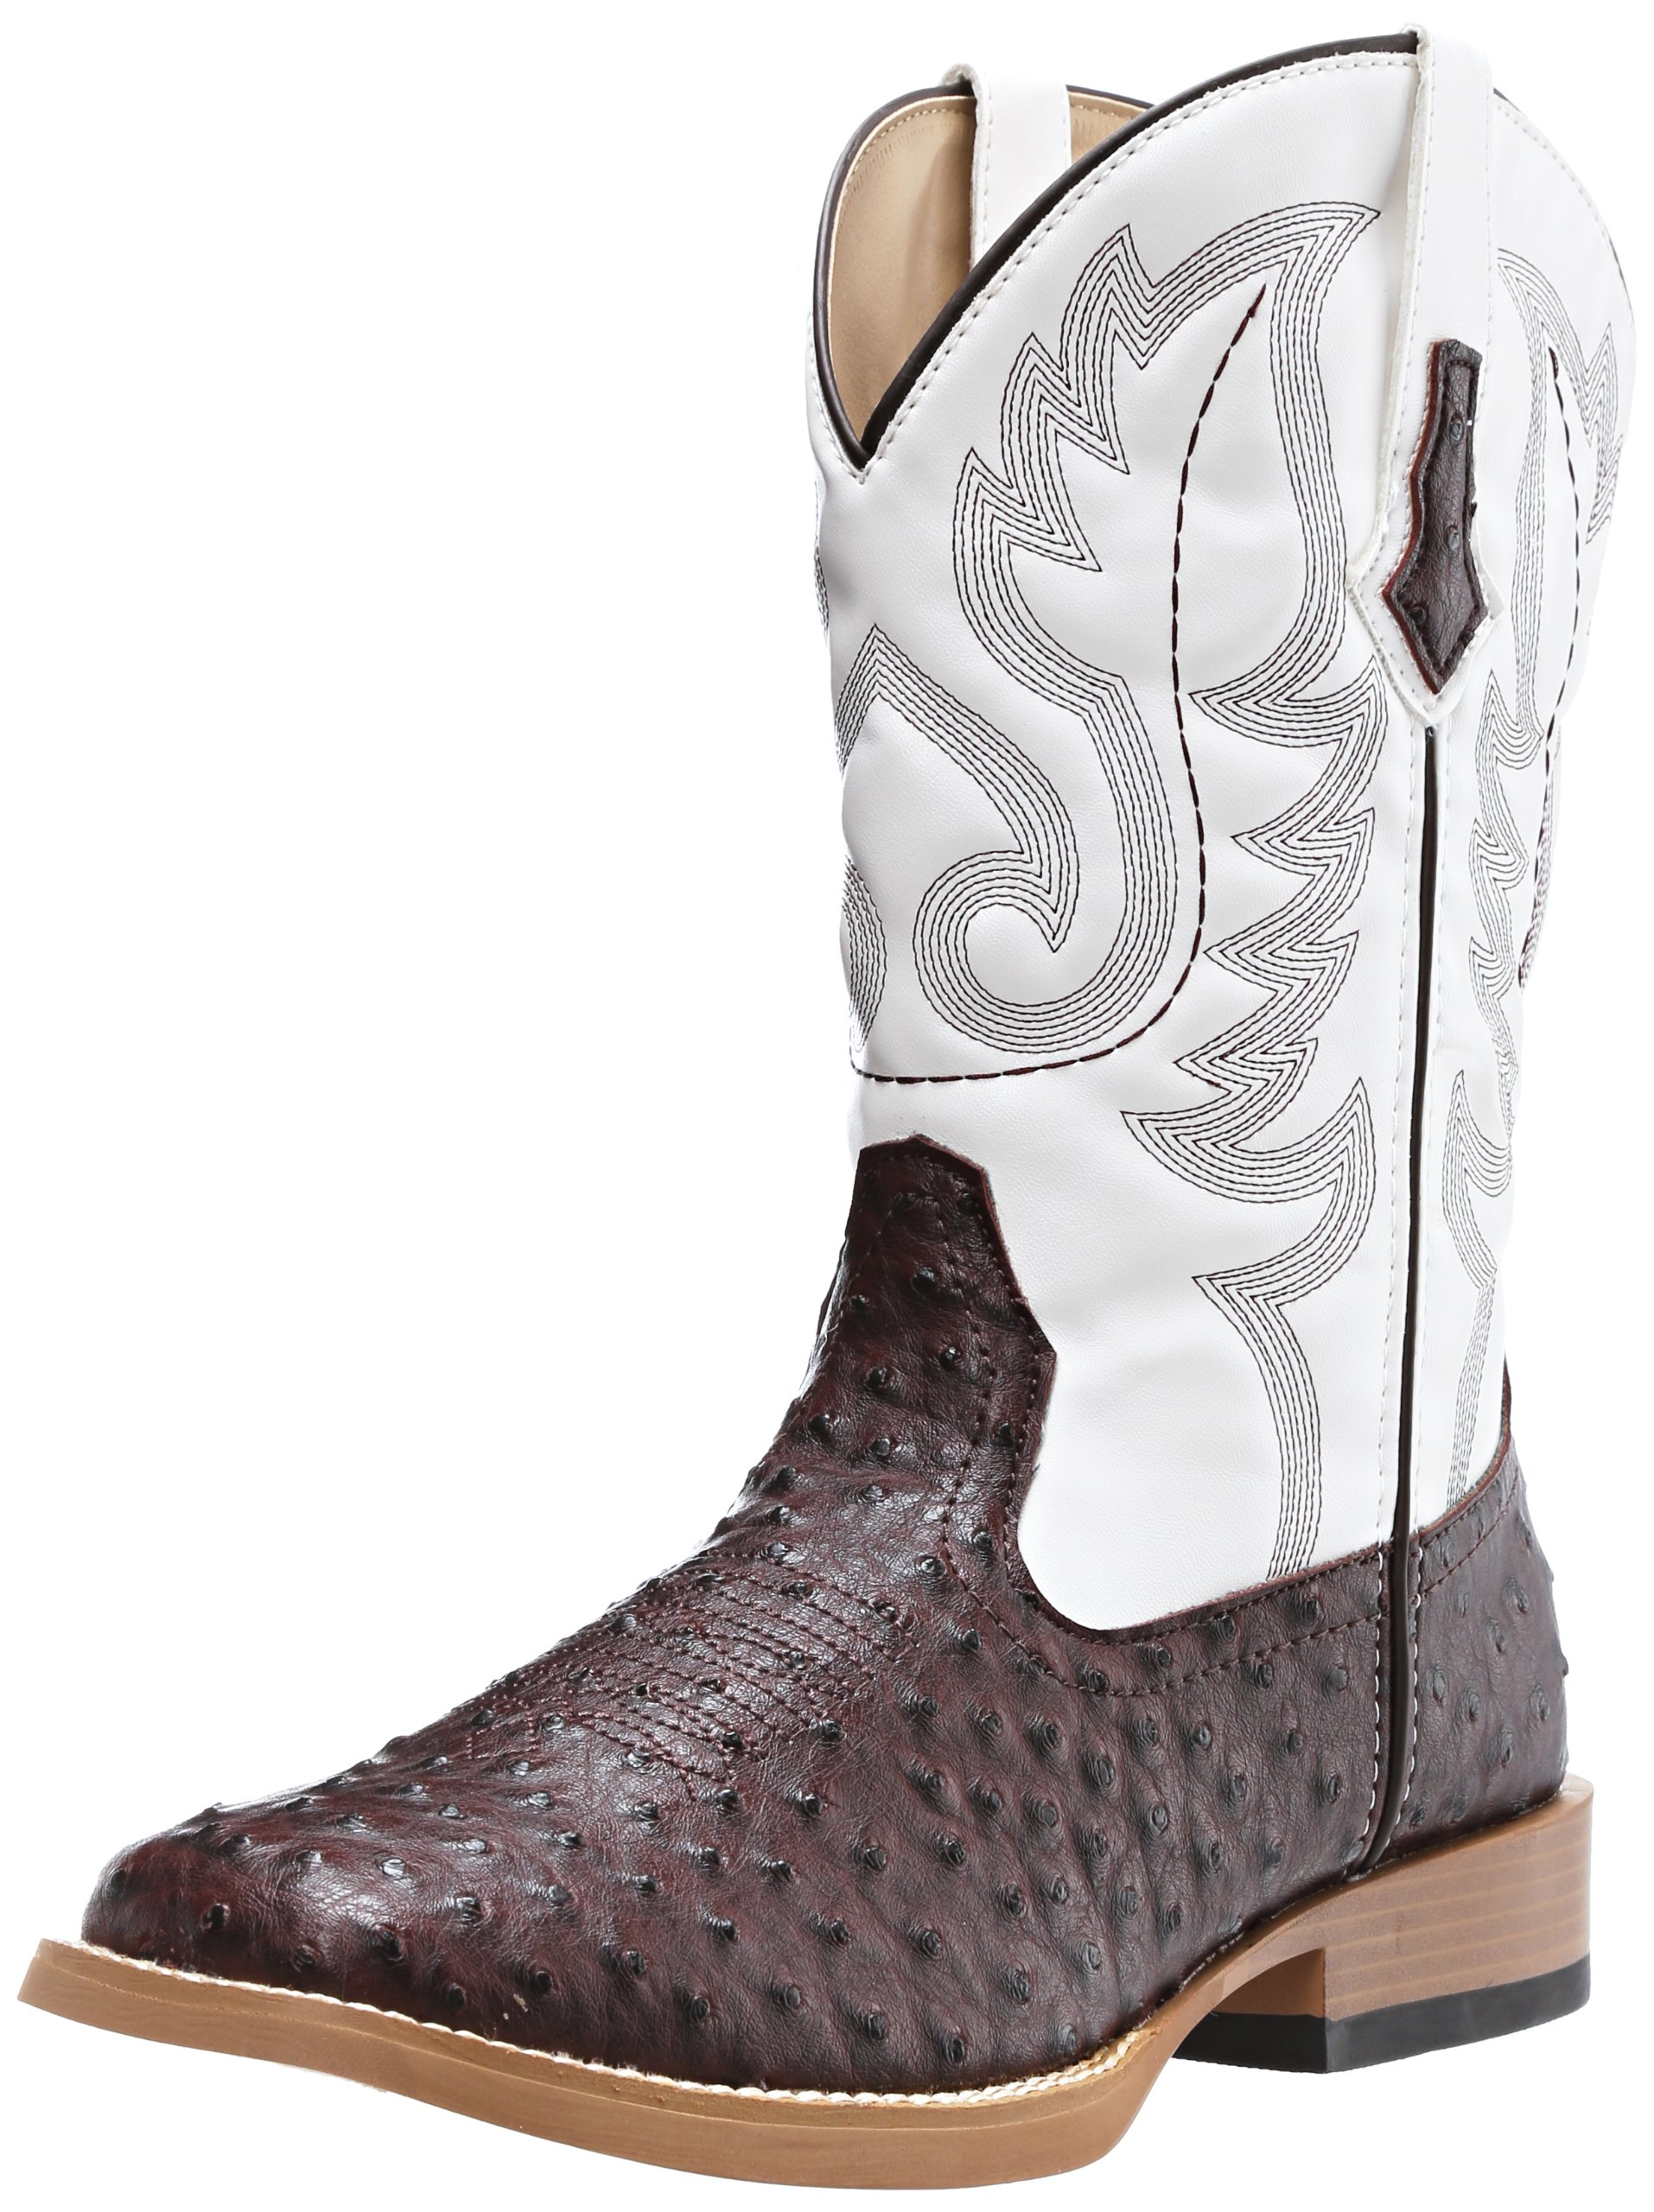 Roper Men's Ostrich Print Square Toe Cowboy Boot Brown Faux Leather/Western Stitch 12 D - Medium by Roper